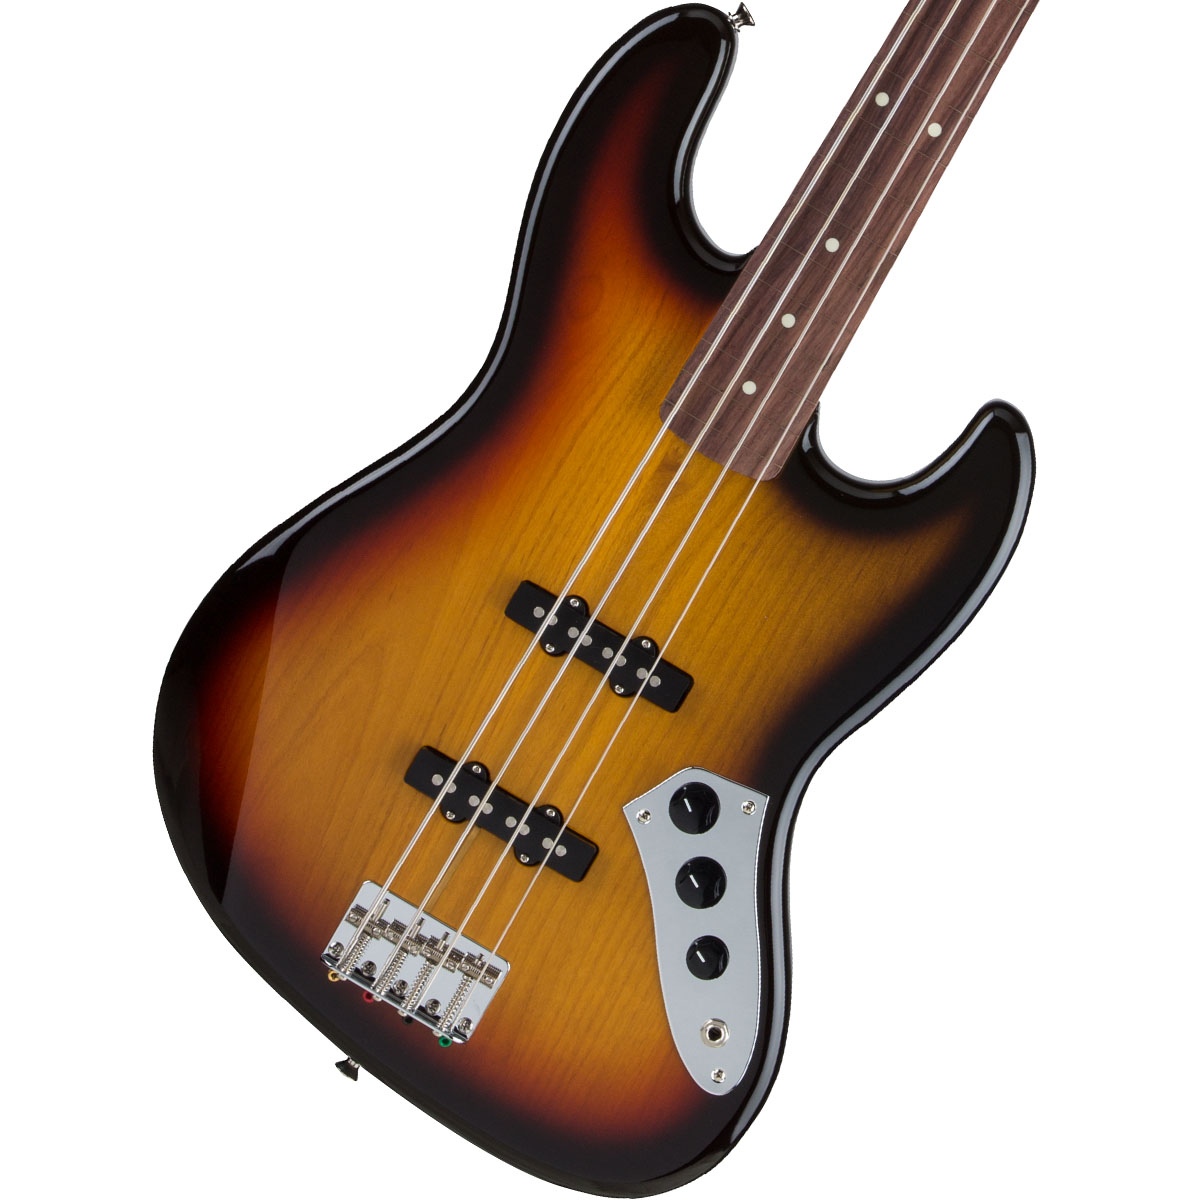 Fender / Made in Japan Traditional 60s Jazz Bass Fretless 3-Color Sunburst 【お取り寄せ商品】《FENDERケアキットプレゼント/+671038200》《ベース弦1setプレゼント!/+811131900》